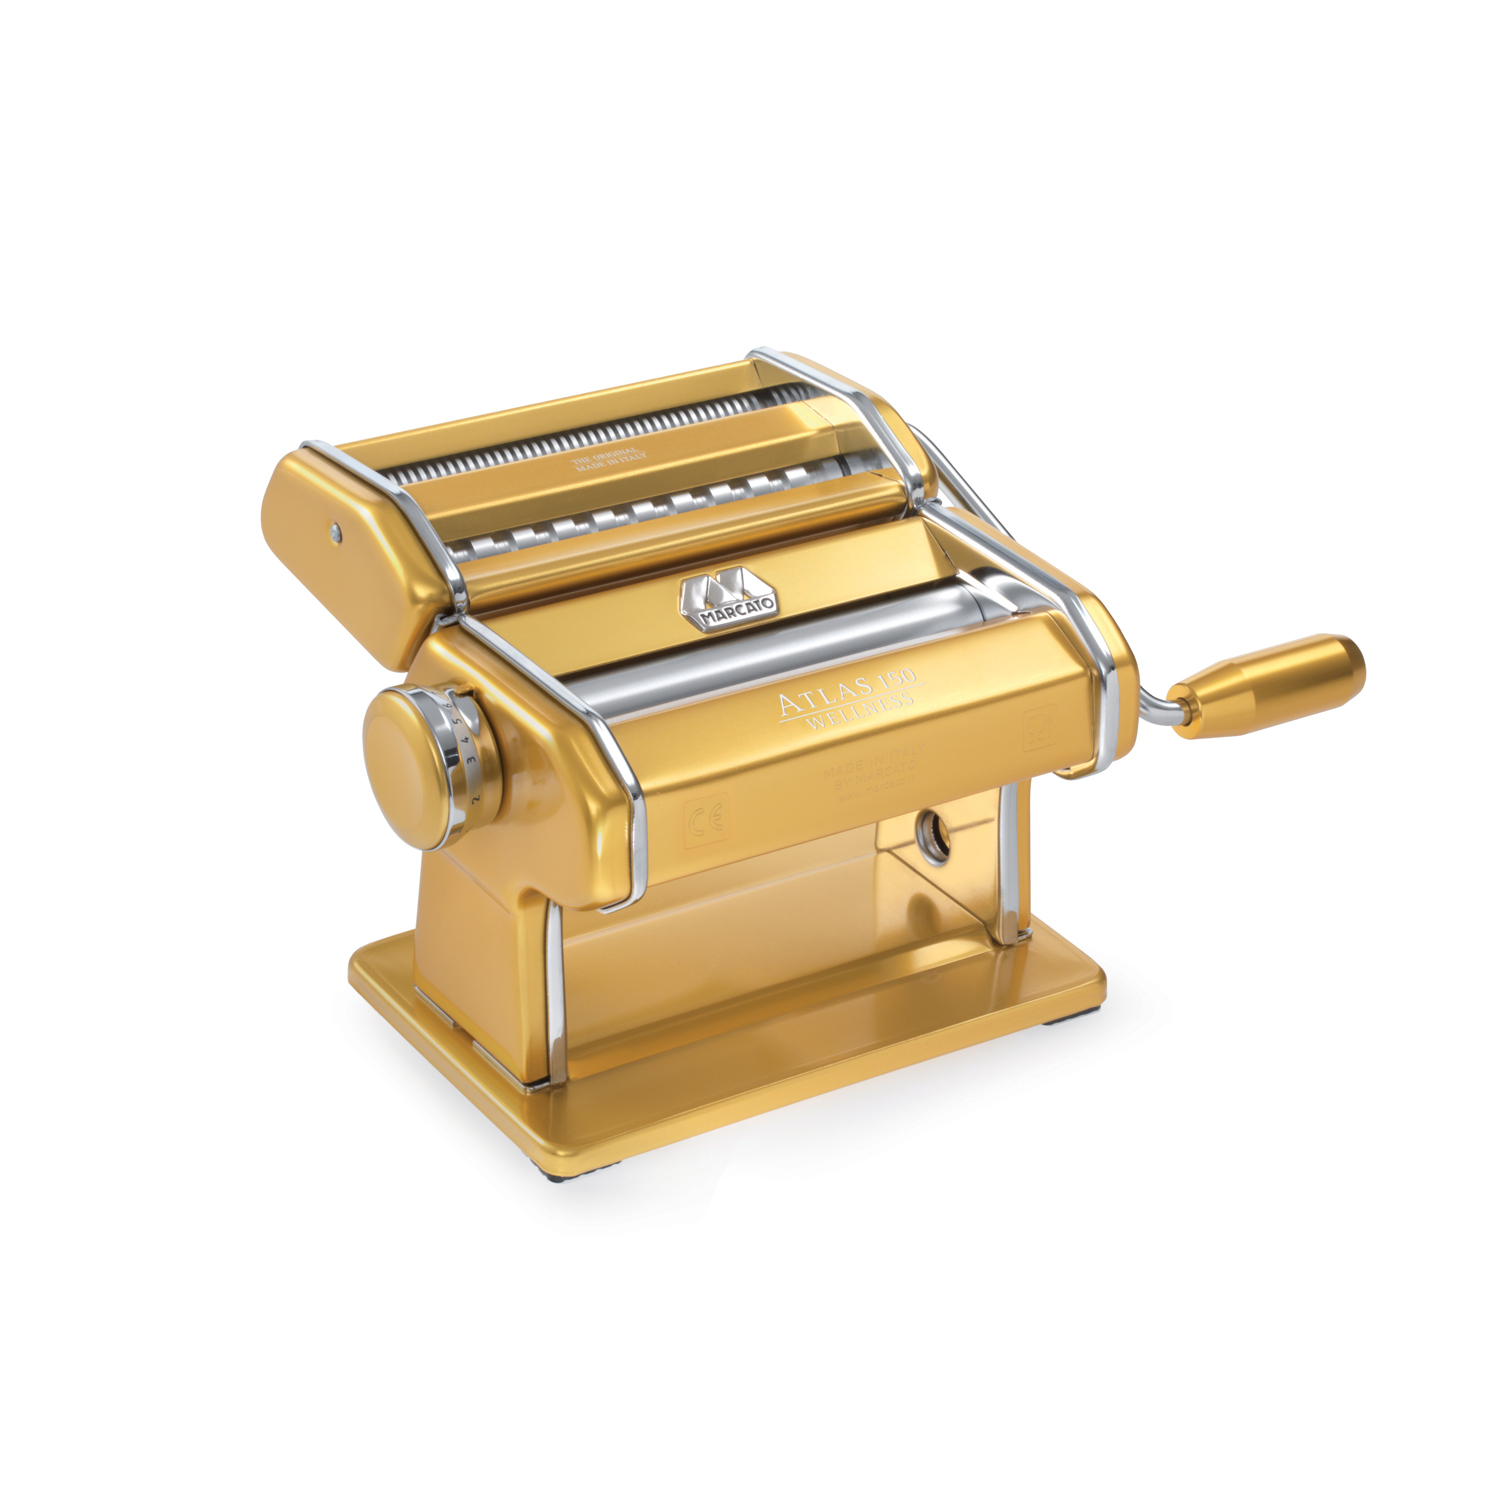 Atlas Made in Italy Pasta Machine, Stainless Steel, Gold, 150-Millimeters Wide, Includes Pasta Machine with... by Marcato